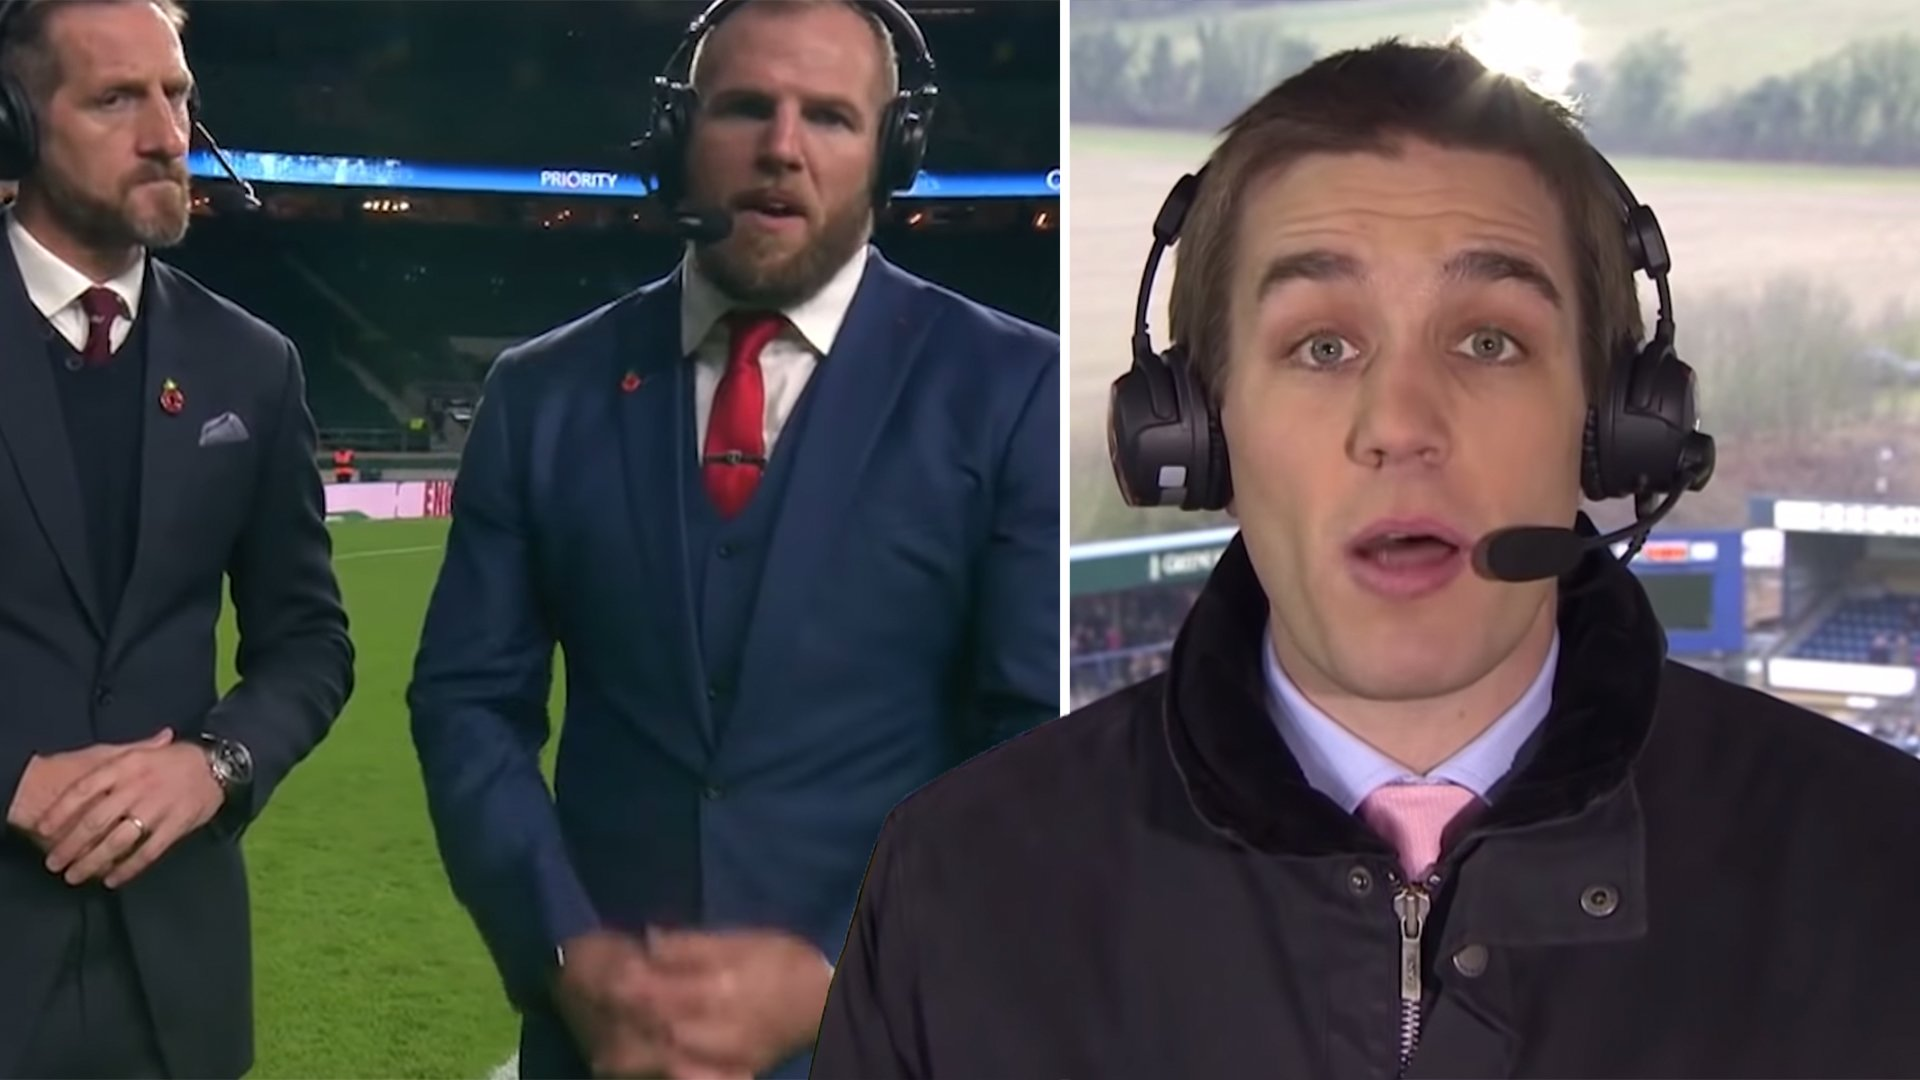 Sky Sports have just posted a brutal compilation on James Haskell and Alex Payne's worst live TV gaffes